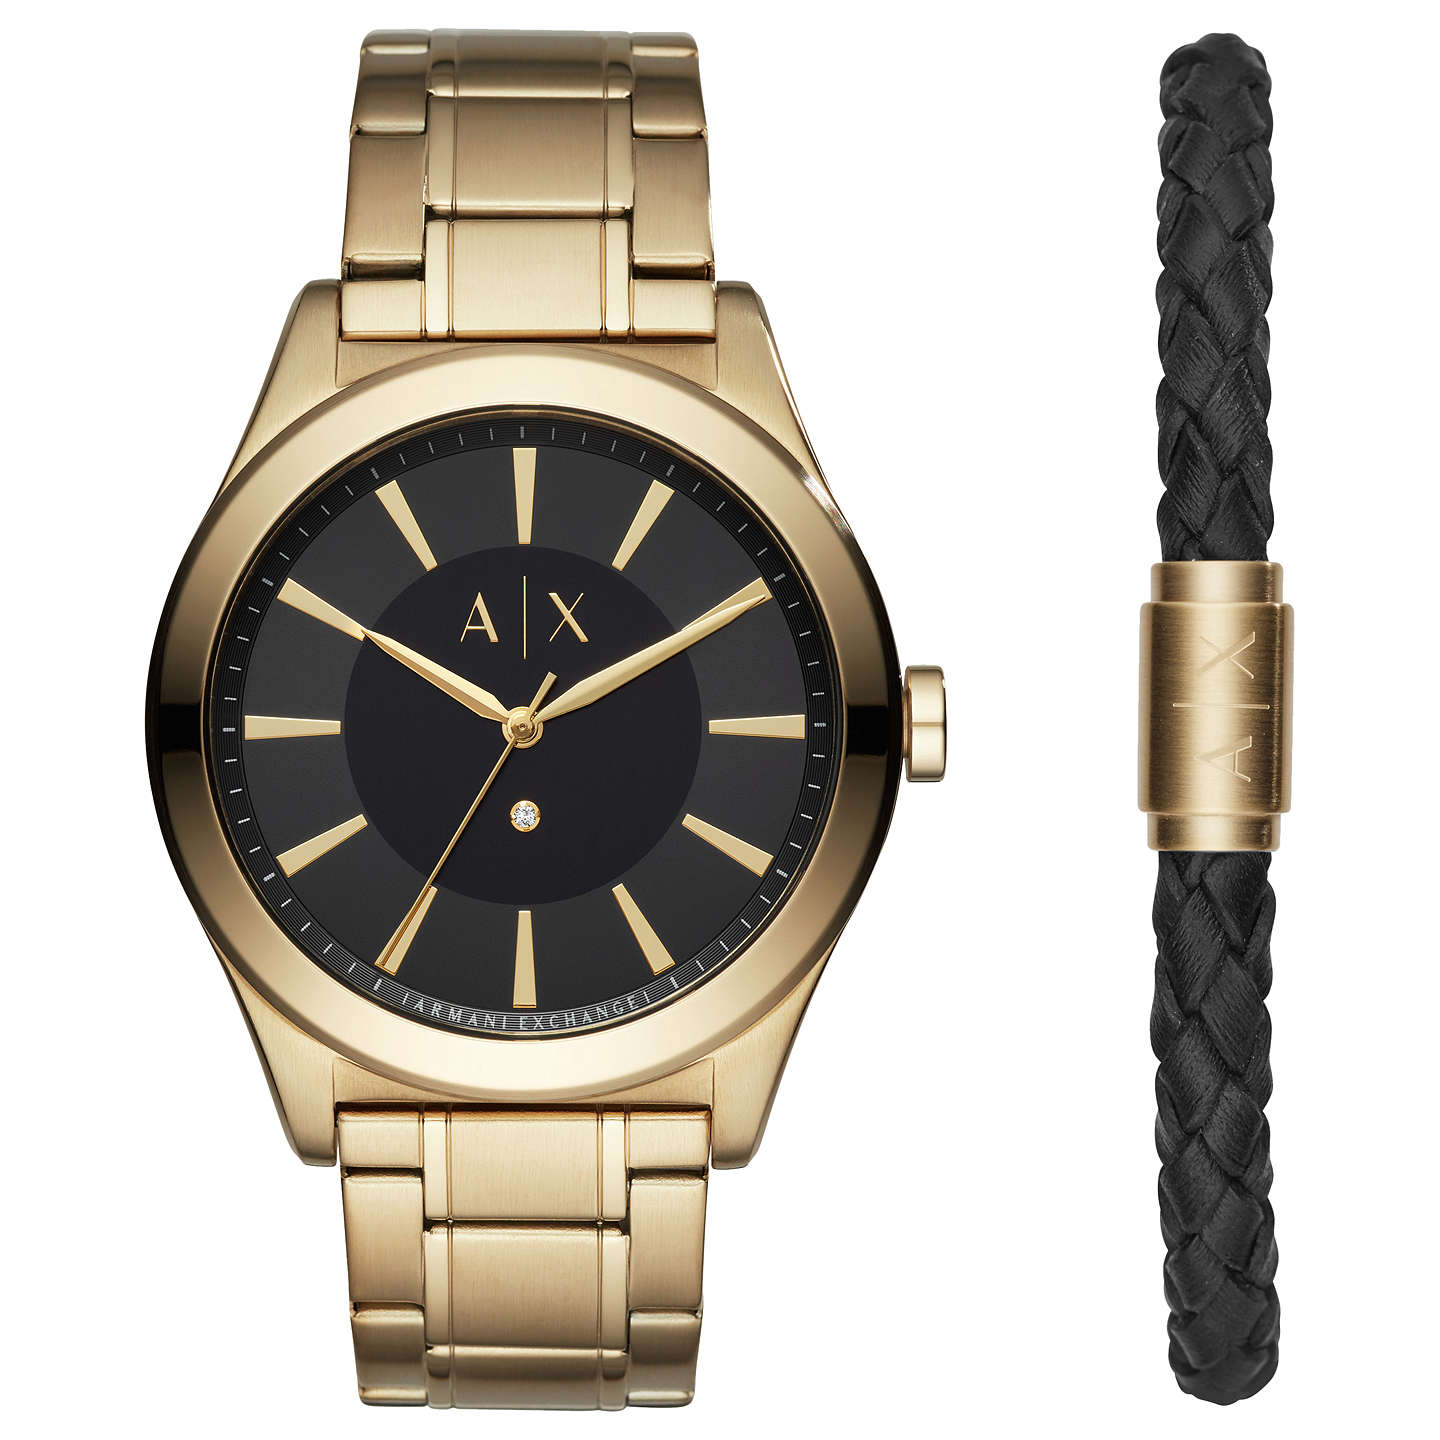 Armani Exchange Ax7104 Men's Dress Bracelet Strap Watch And Leather Bracelet Set, Gold/Black by Armani Exchange